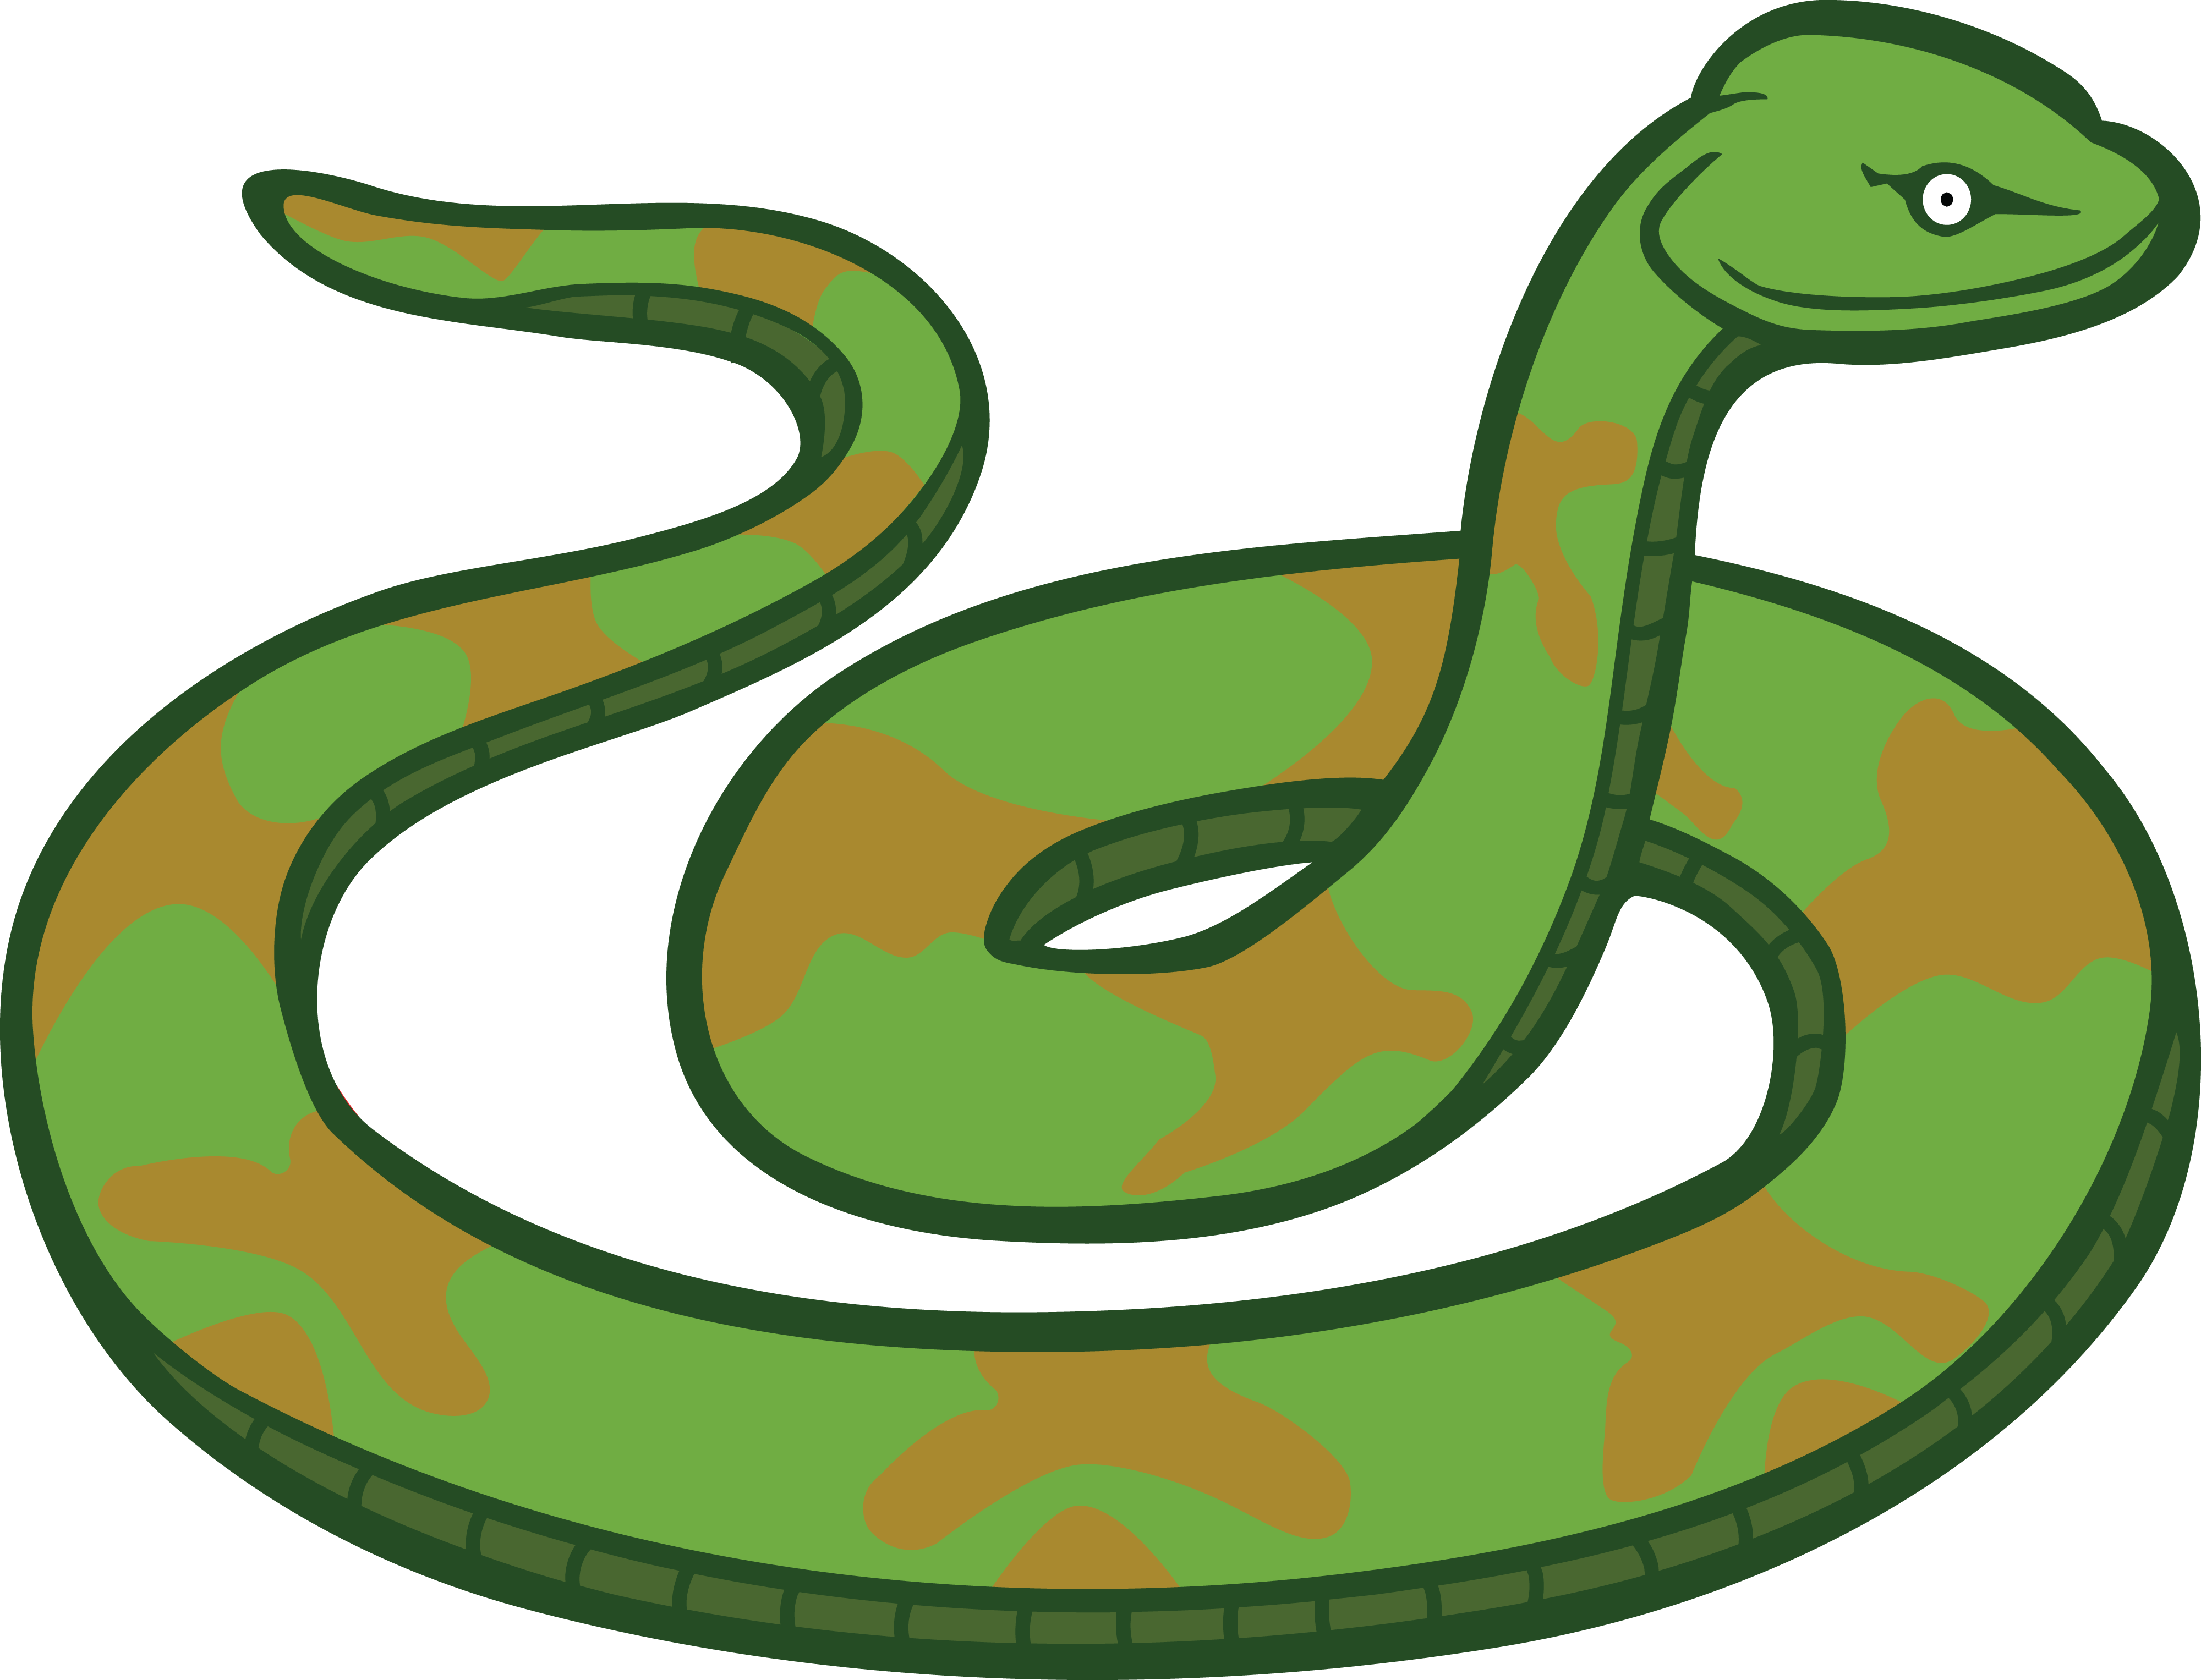 Snake pictures clipart clip transparent download Number clipart snake - 140 clip arts for free download on ... clip transparent download